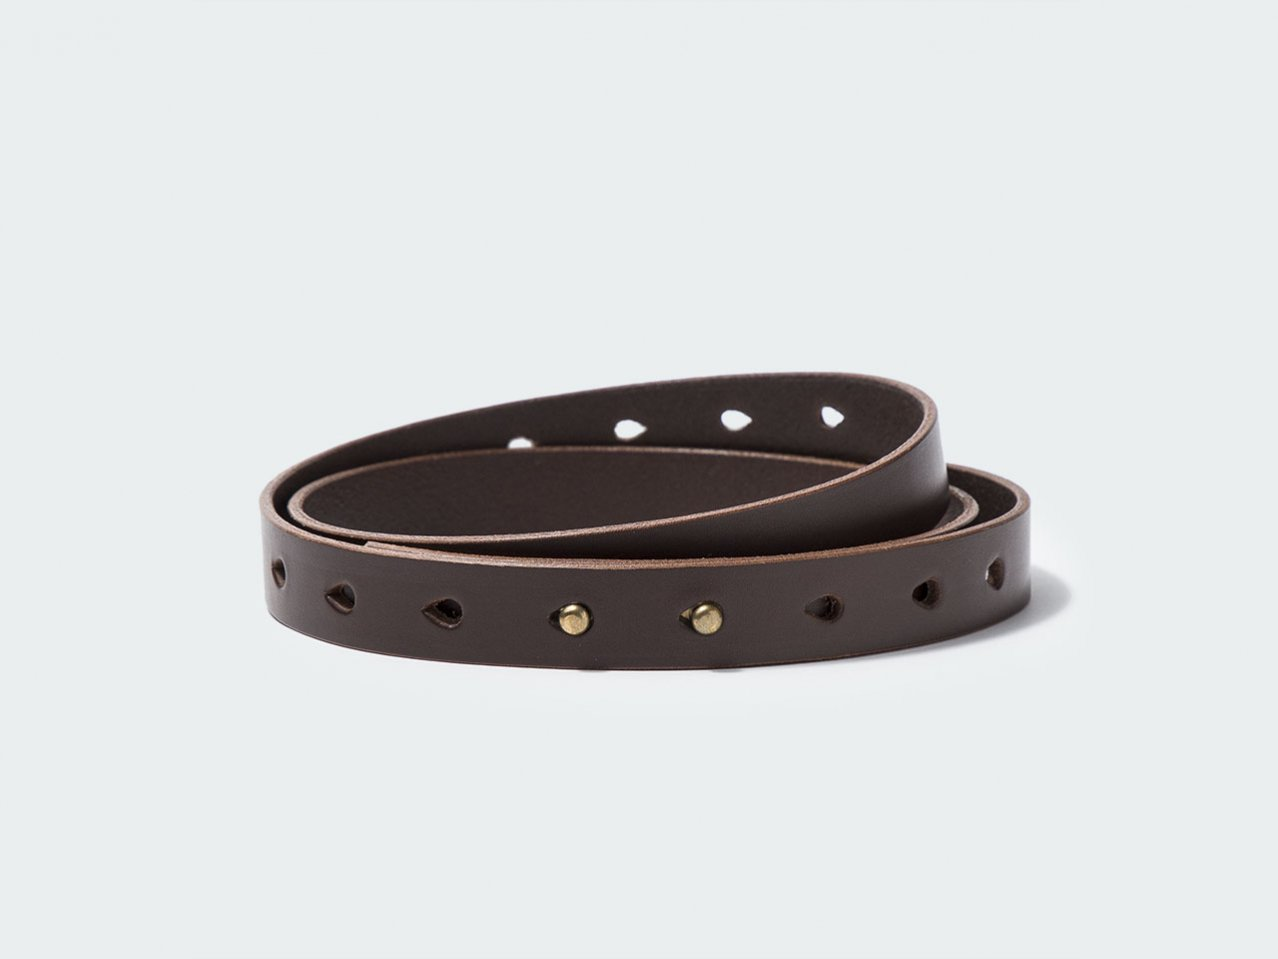 NARROW BUTTON BELT 22 / DARK BROWN